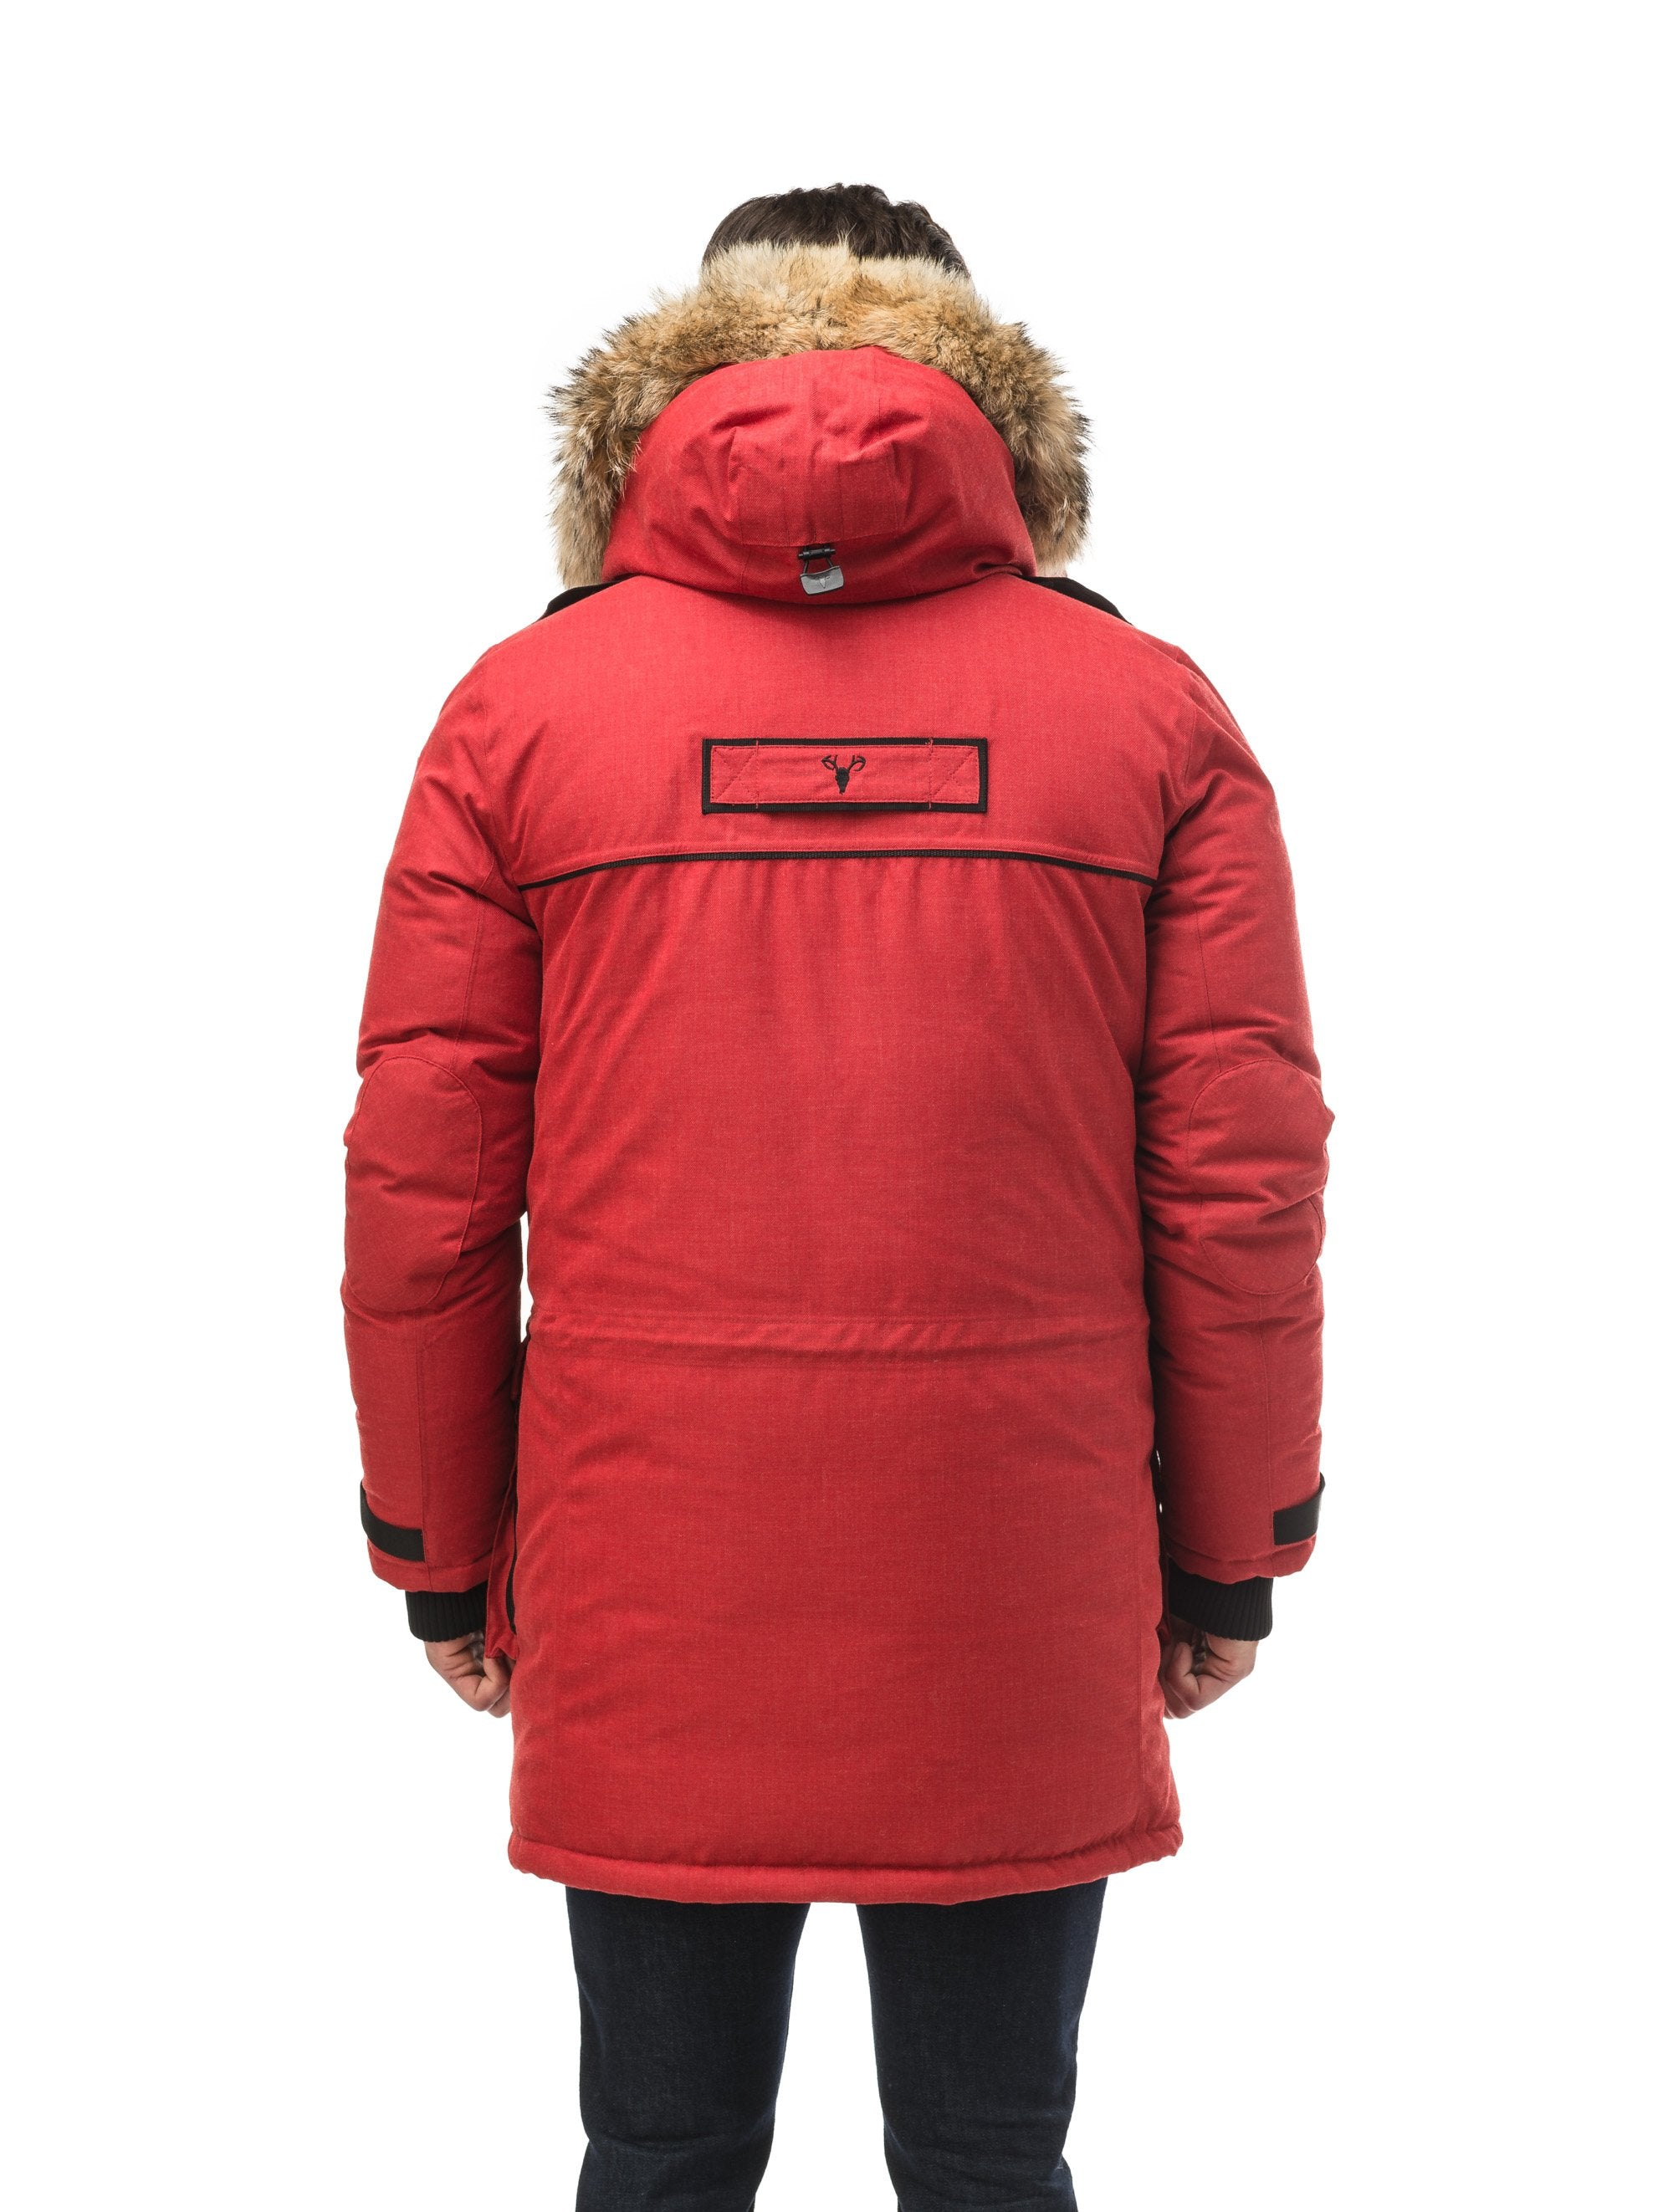 Men's extreme wamrth down filled parka with baffle box construction for even down distribution in H. Red | color